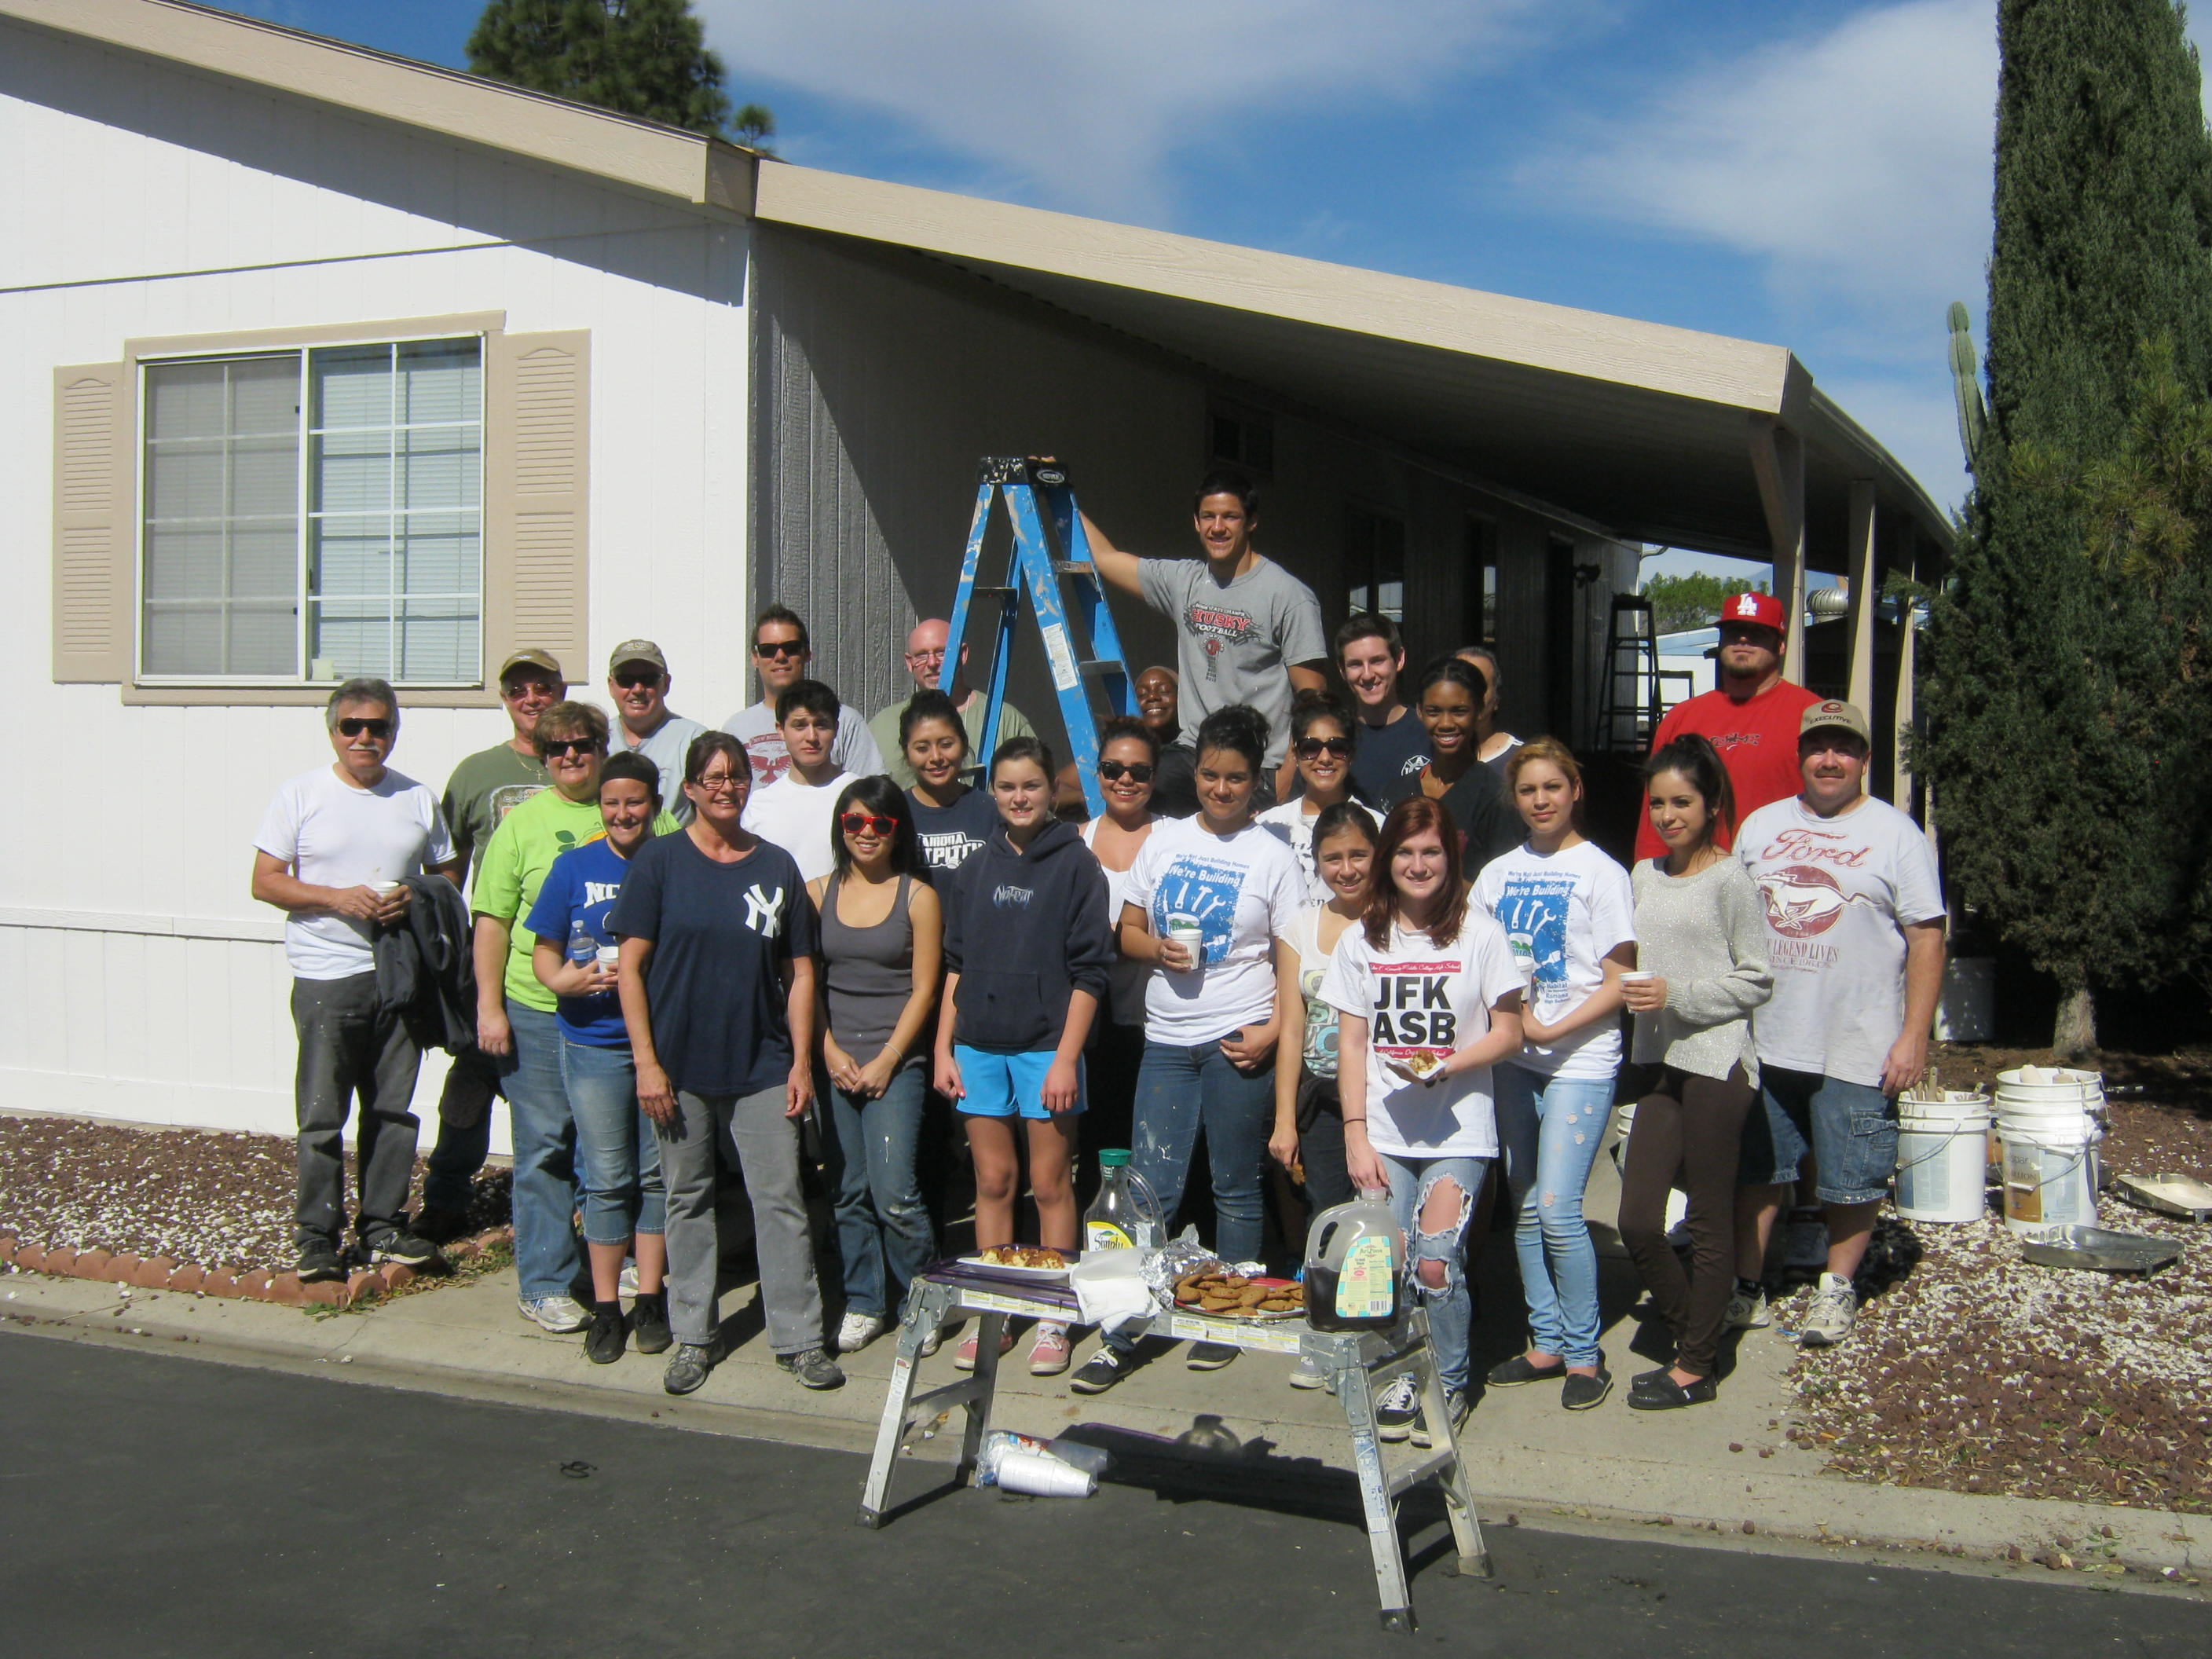 New Beginnings Community Church and Interact Club from Ramona High School, Corona, A Brush with Kindness, Volunteer